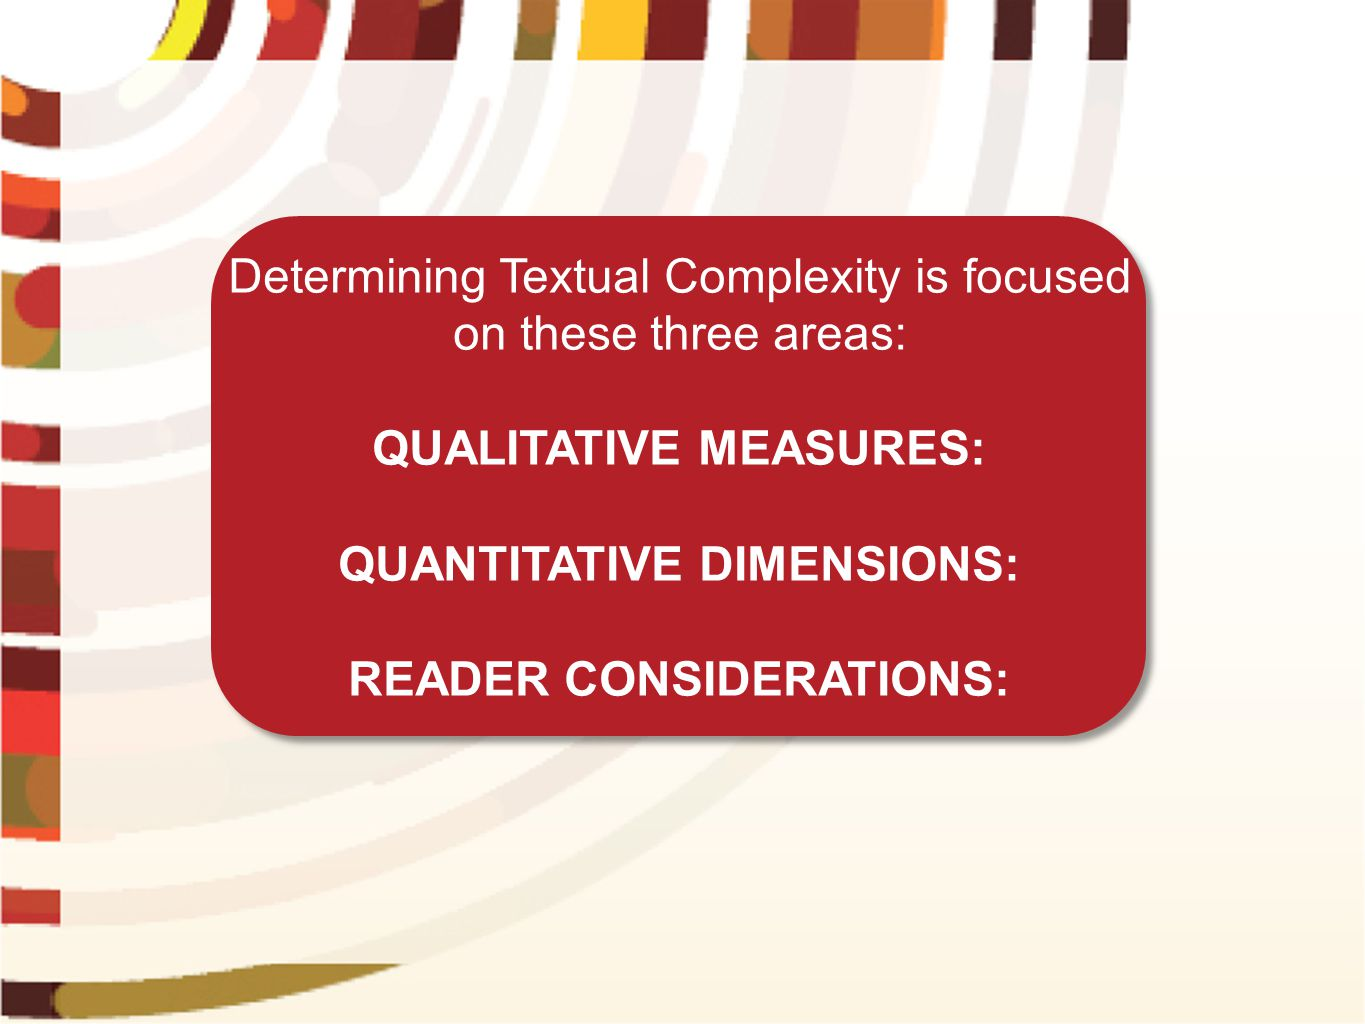 Determining Textual Complexity is focused on these three areas: QUALITATIVE MEASURES: QUANTITATIVE DIMENSIONS: READER CONSIDERATIONS: